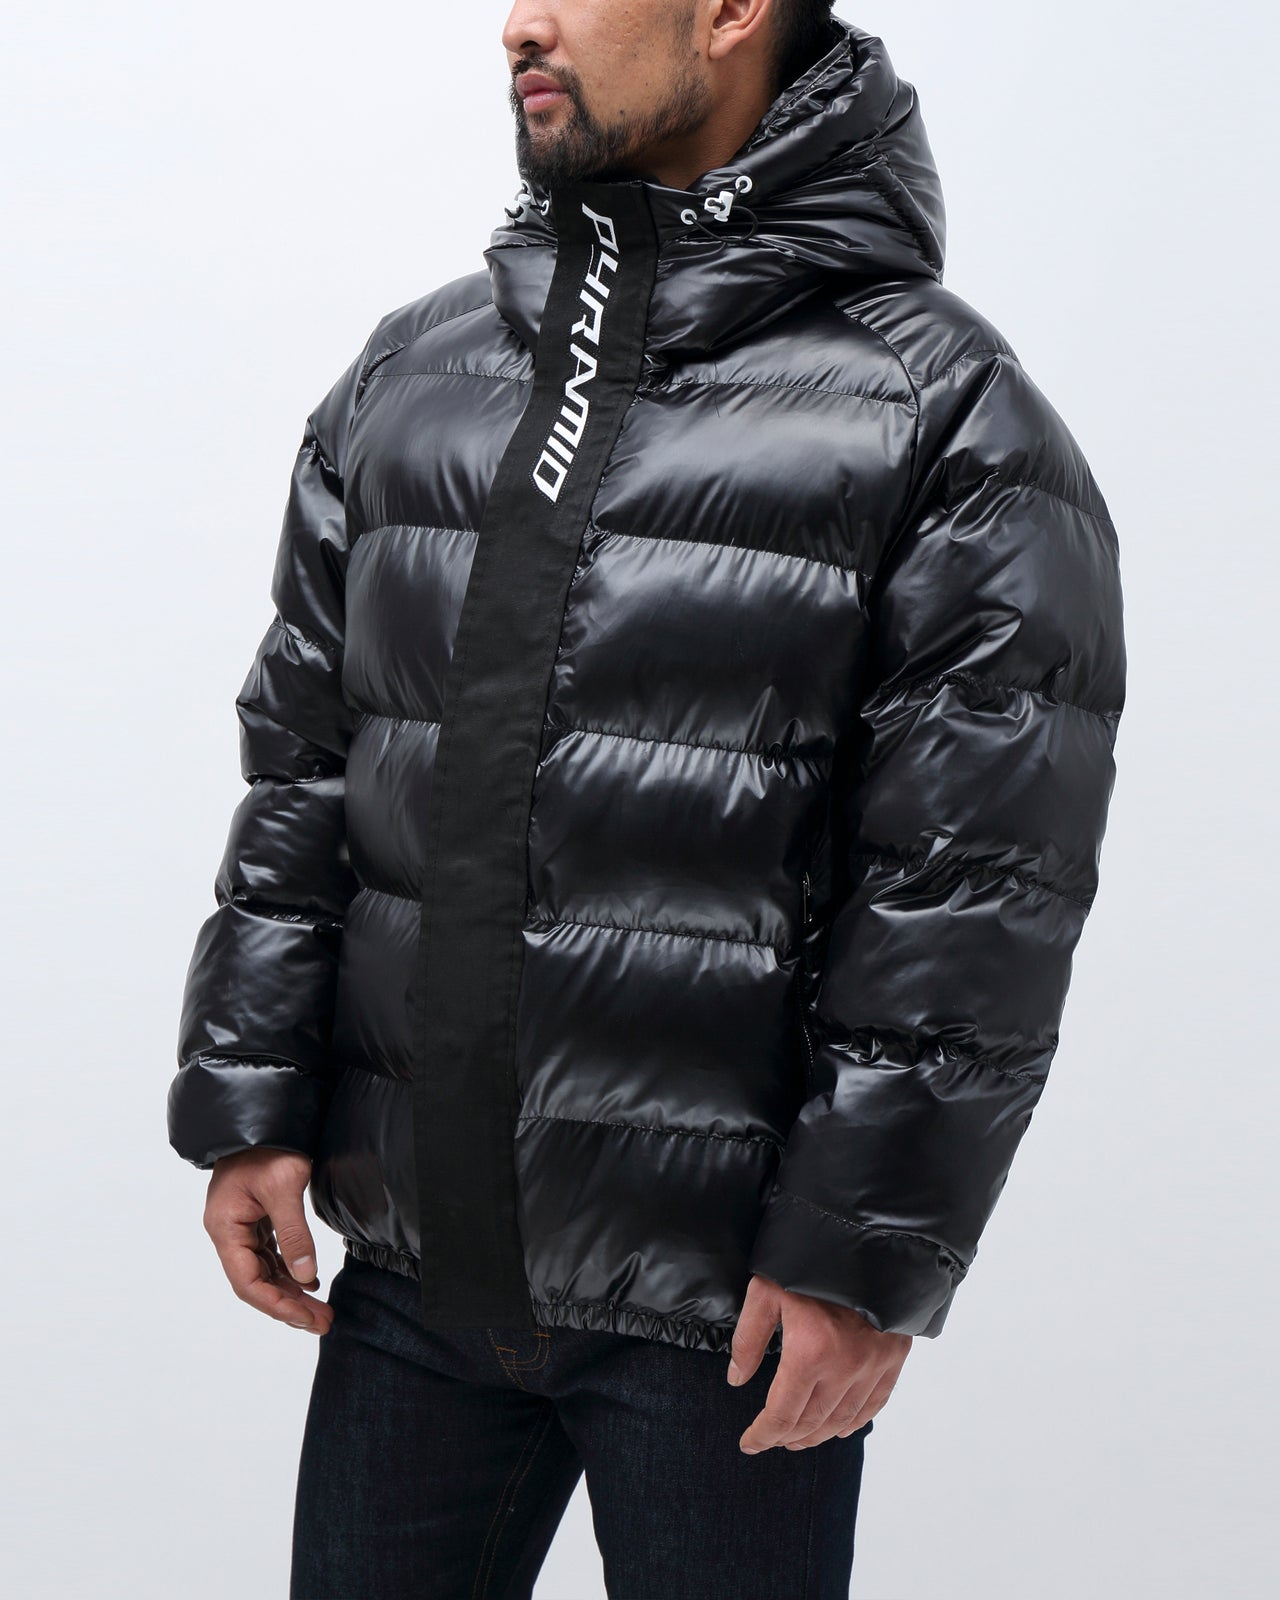 BP Full Zip Taped Placket Puffy Jacket - Color: Black